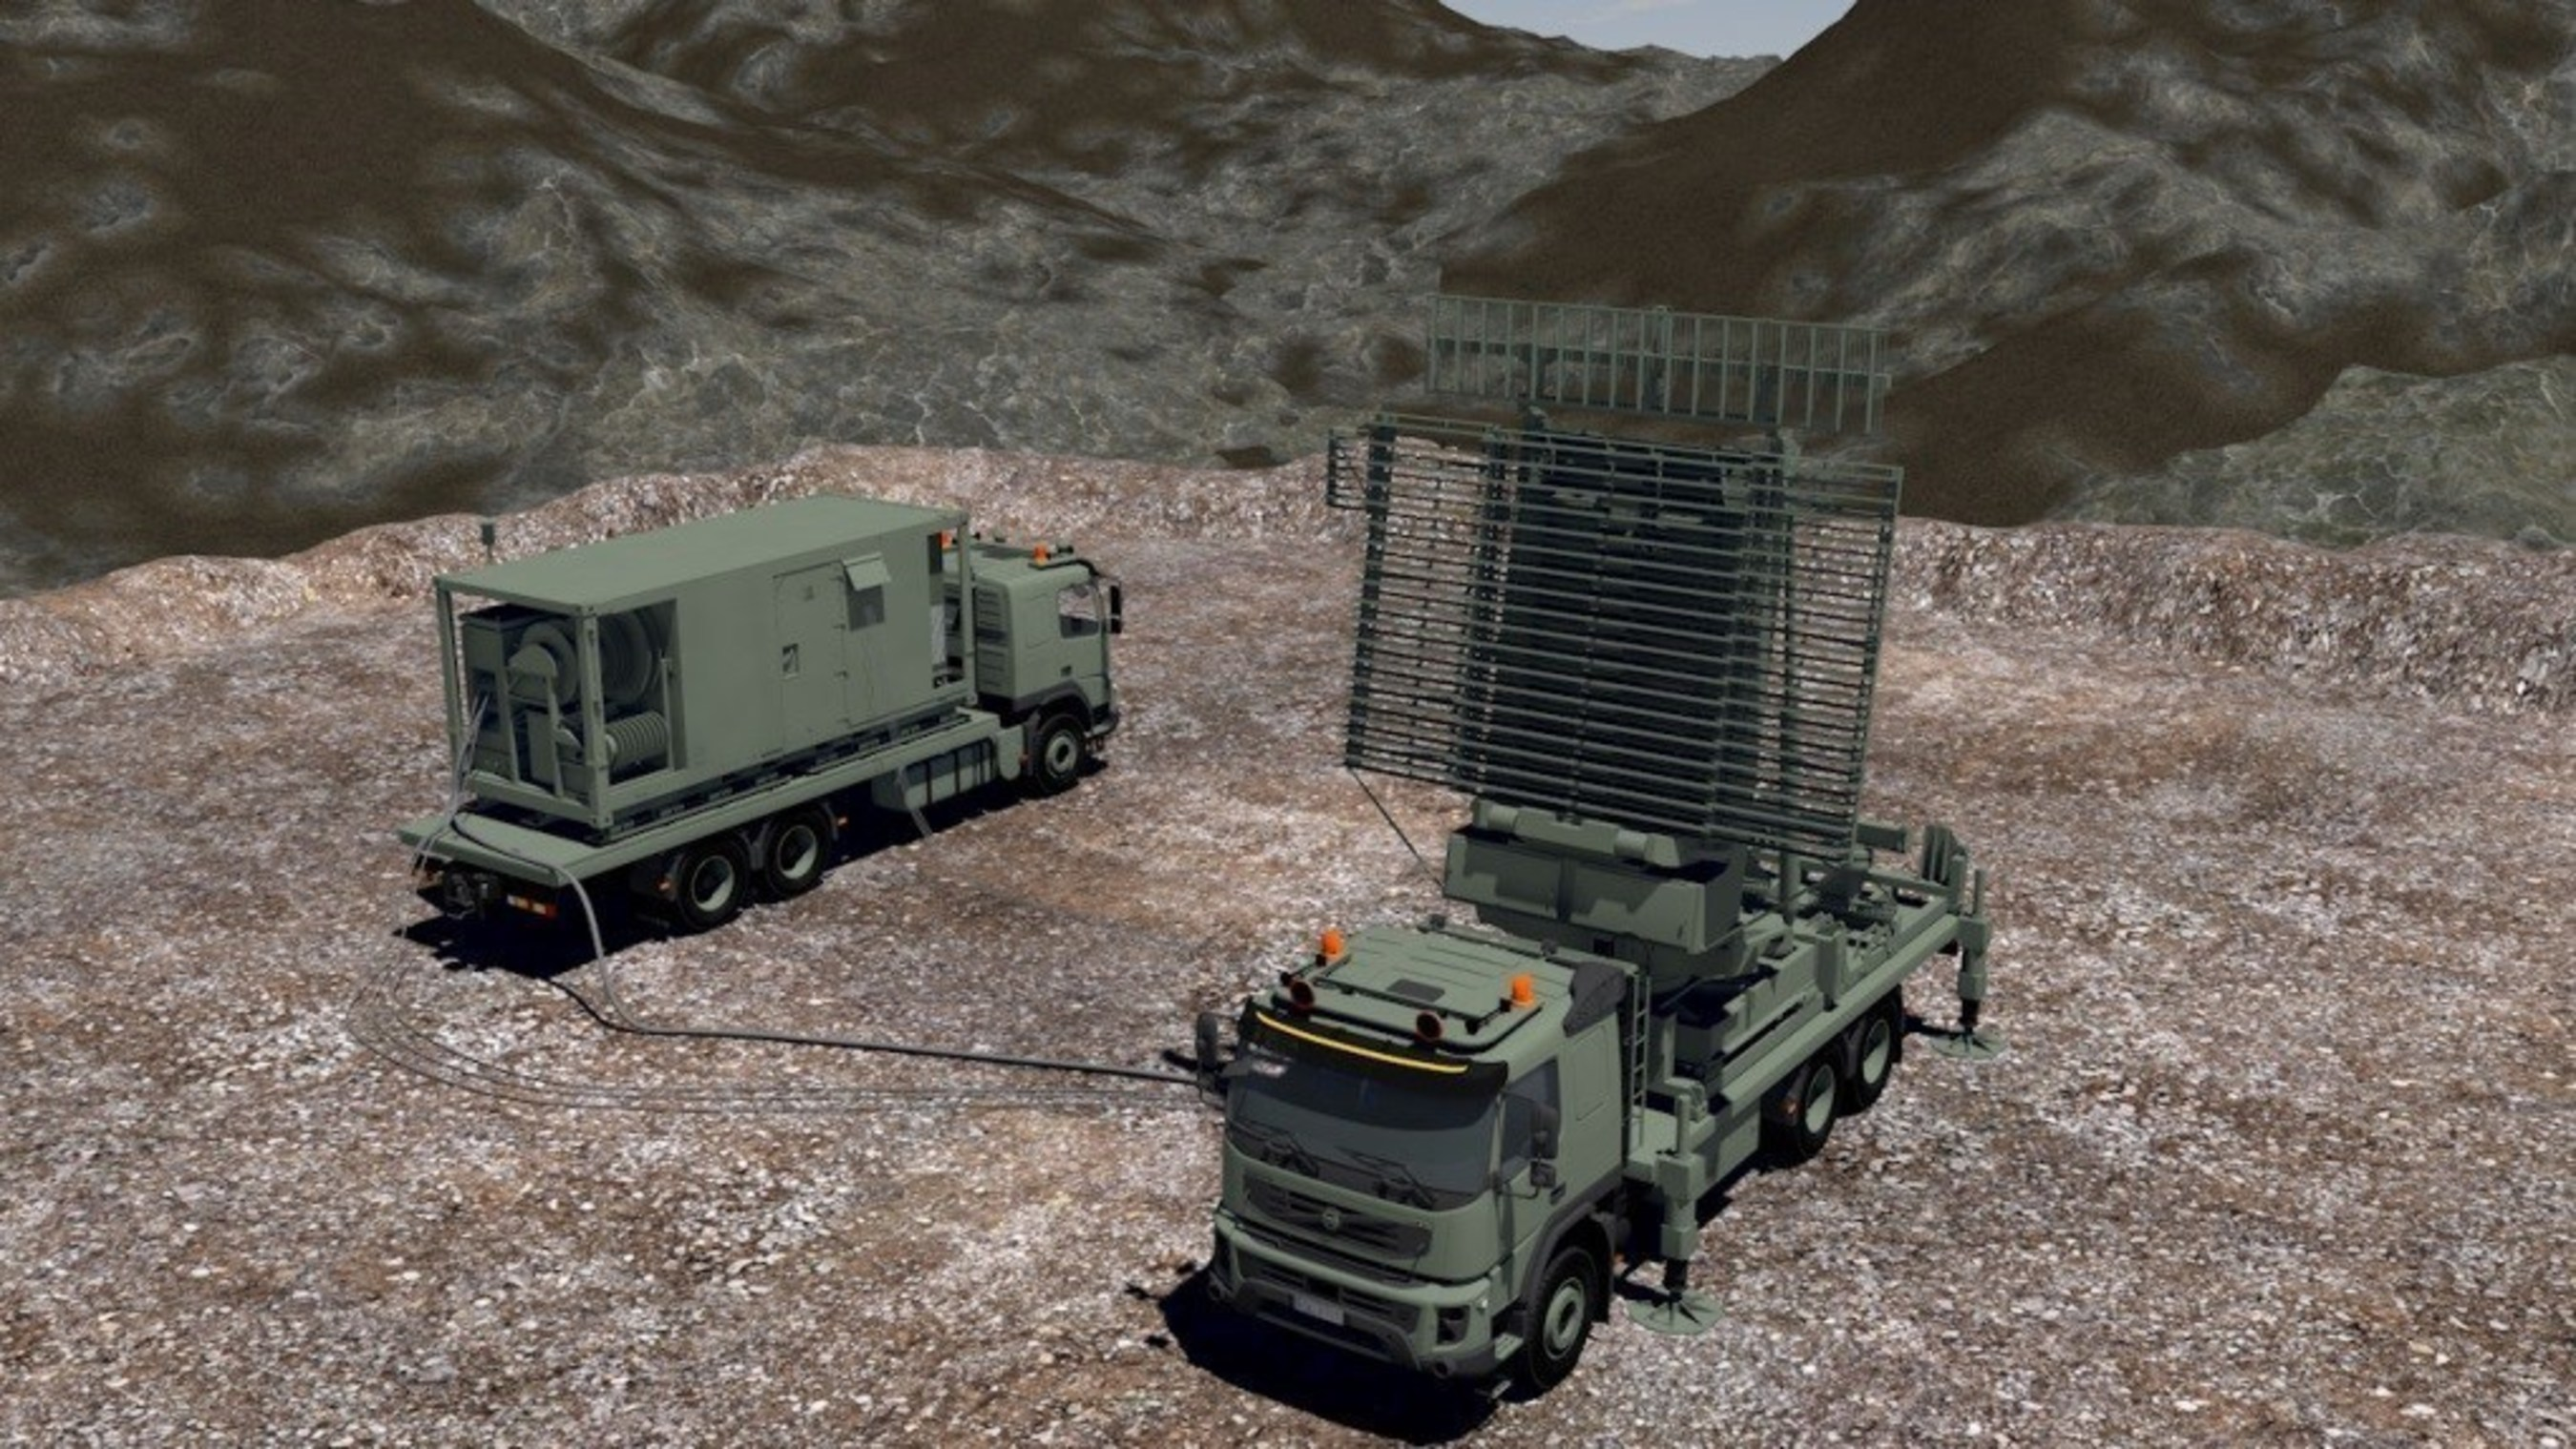 Trust Automation contributes to Lockheed Martin's TPS-77, a highly mobile radar system